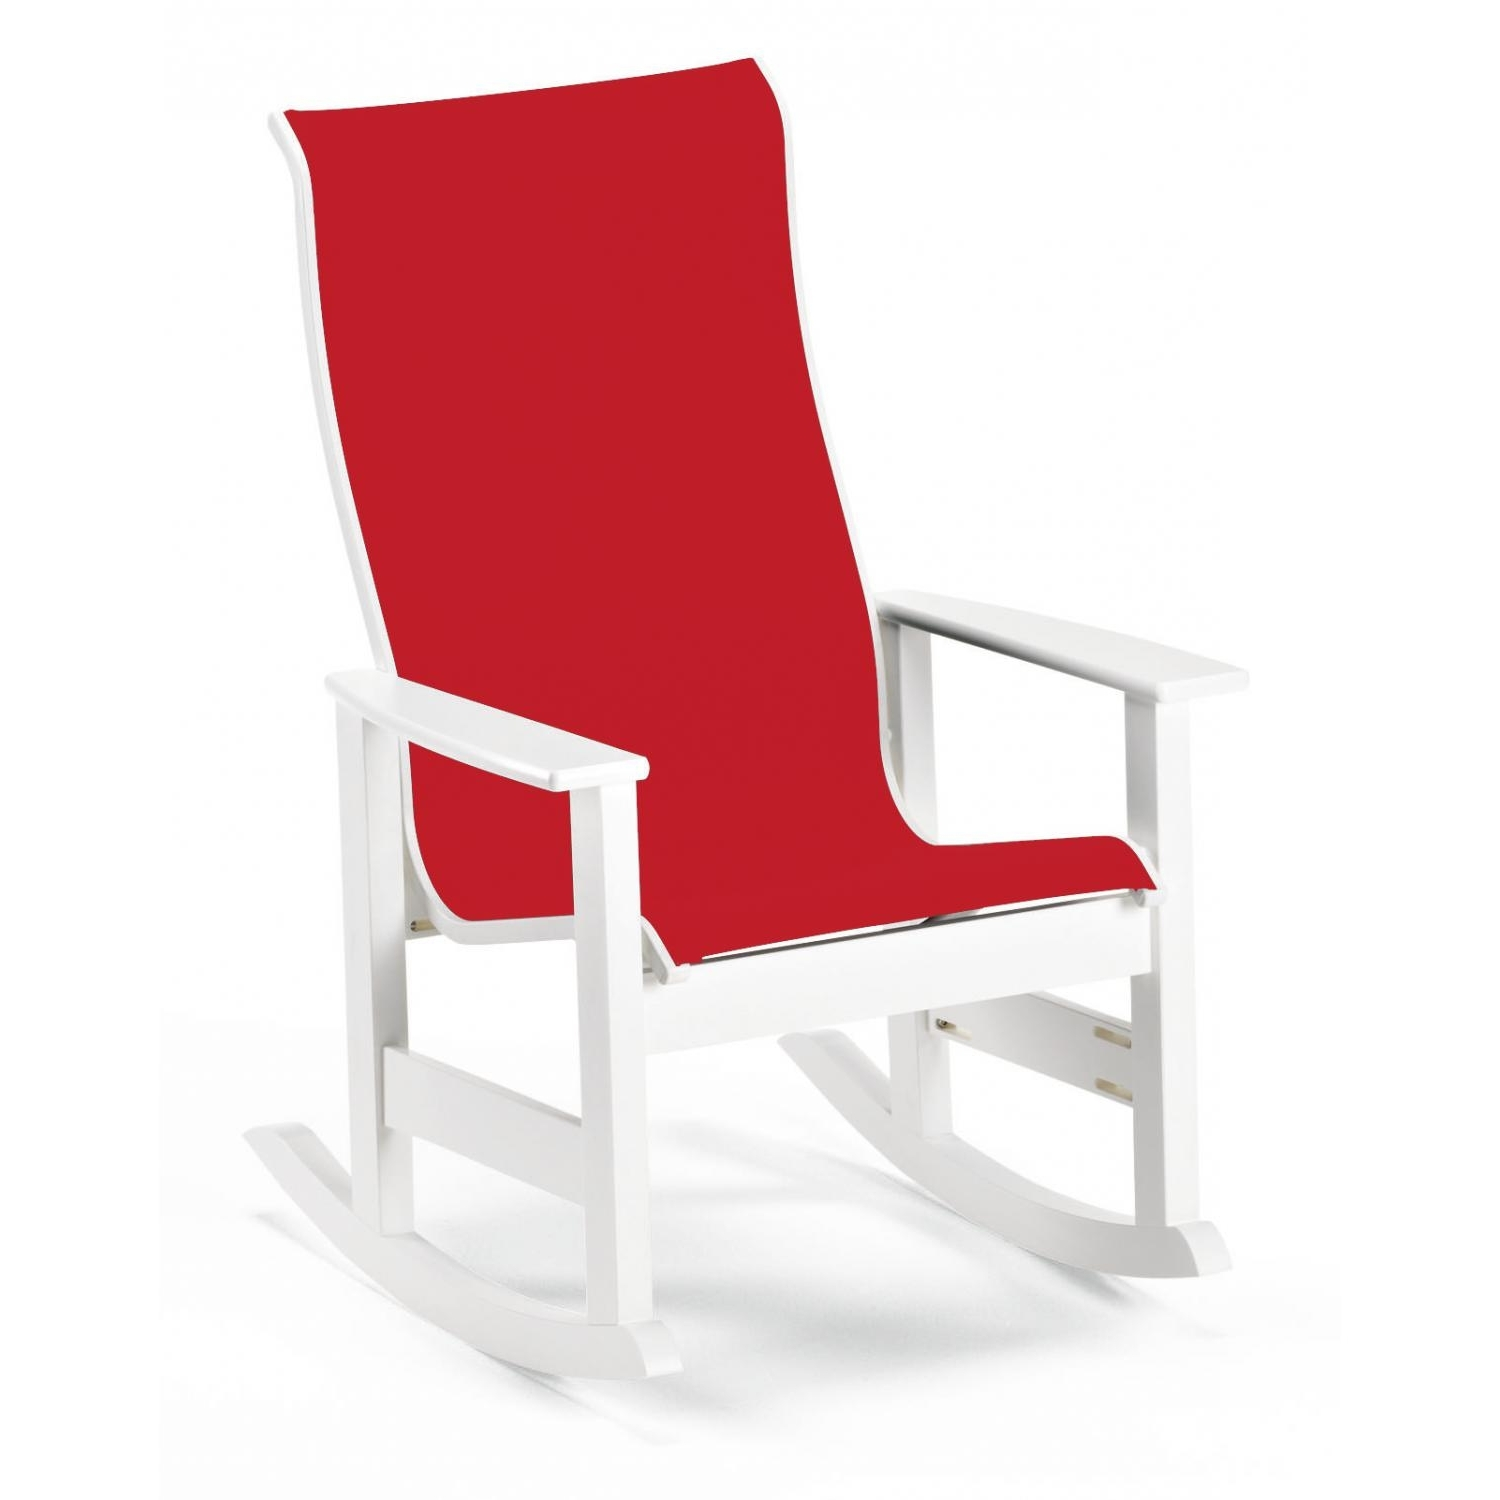 2017 Red Patio Rocking Chairs Pertaining To Leeward Supreme Mgp Patio Rocking Chair With Sling Seating (View 14 of 15)